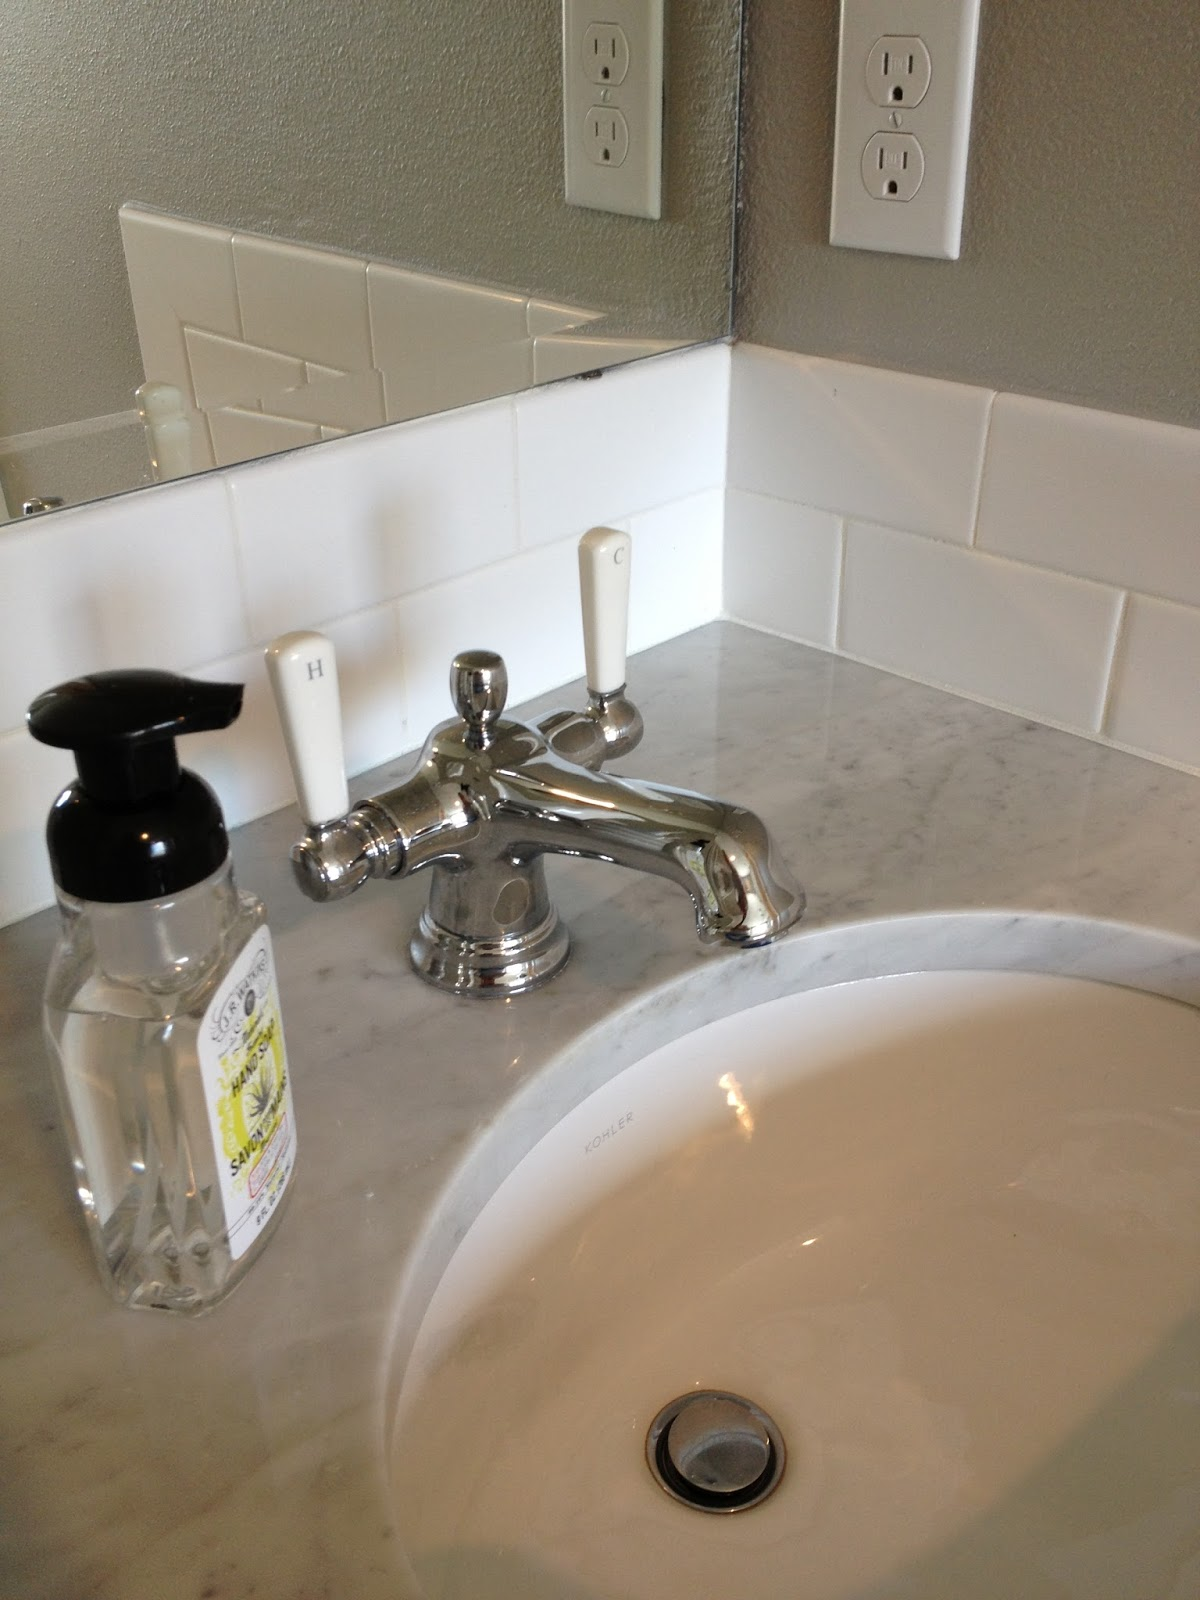 Kohler Kitchen Sink Faucets Types Materials Building Our Dream Home, From The Ground Up: House Tour ...